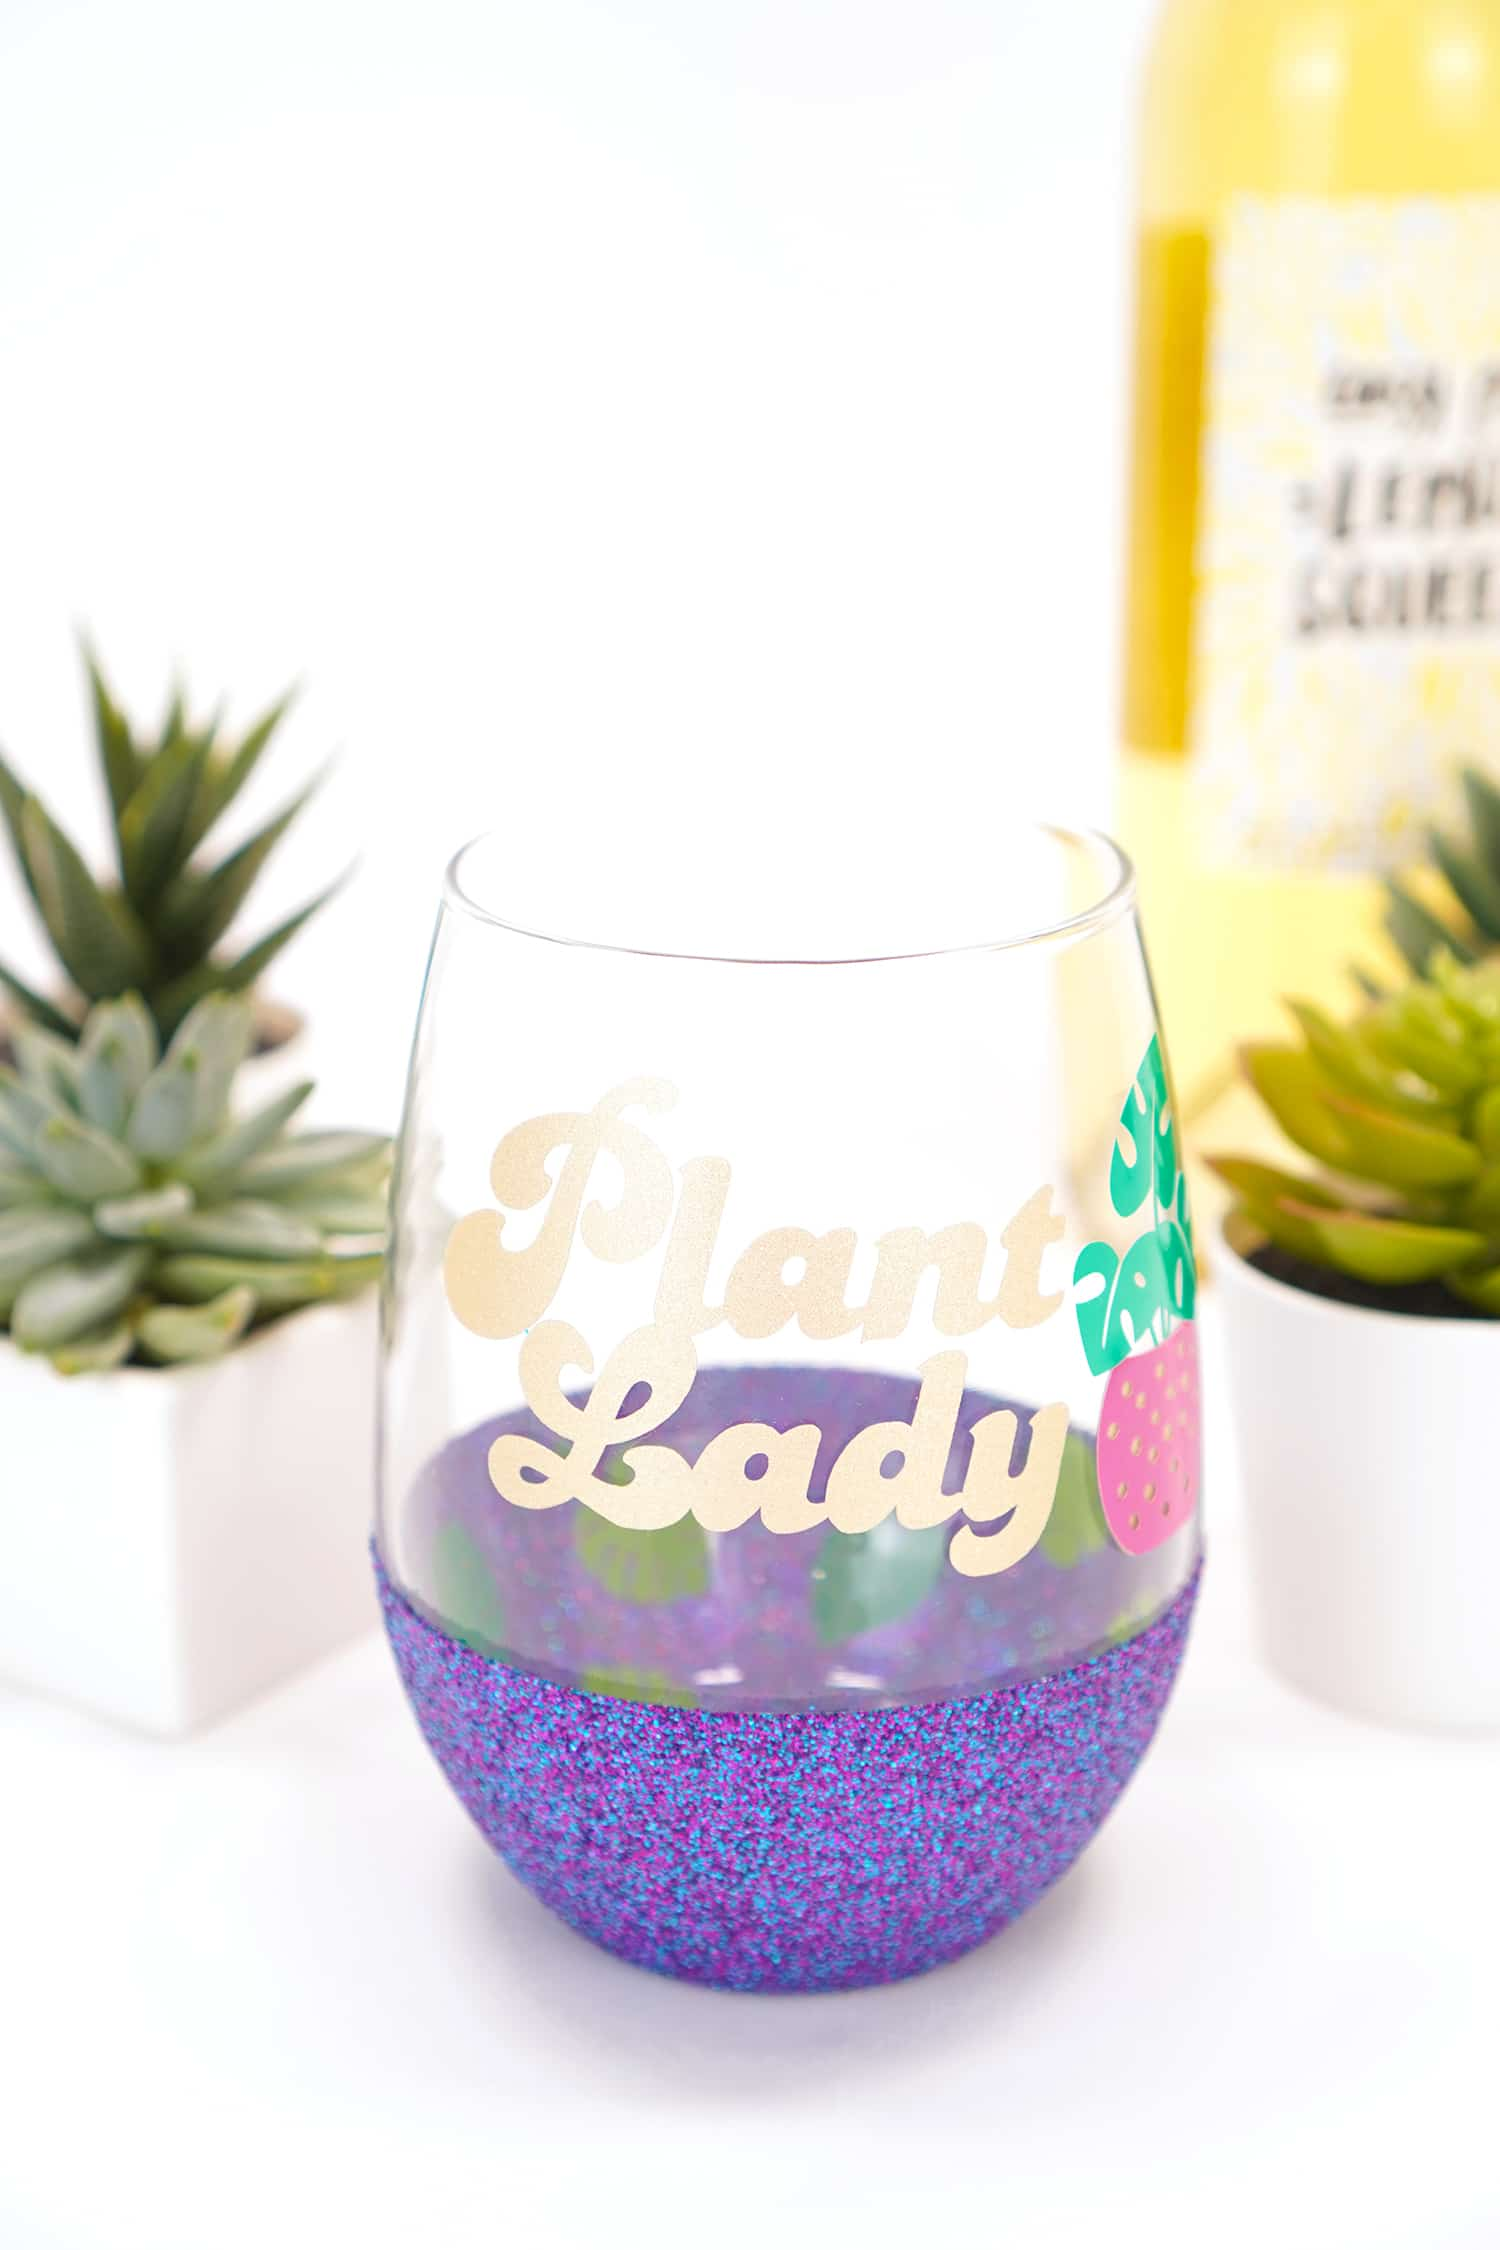 Plant Lady Wine Glass with Gold Text - plants and wine bottle in background